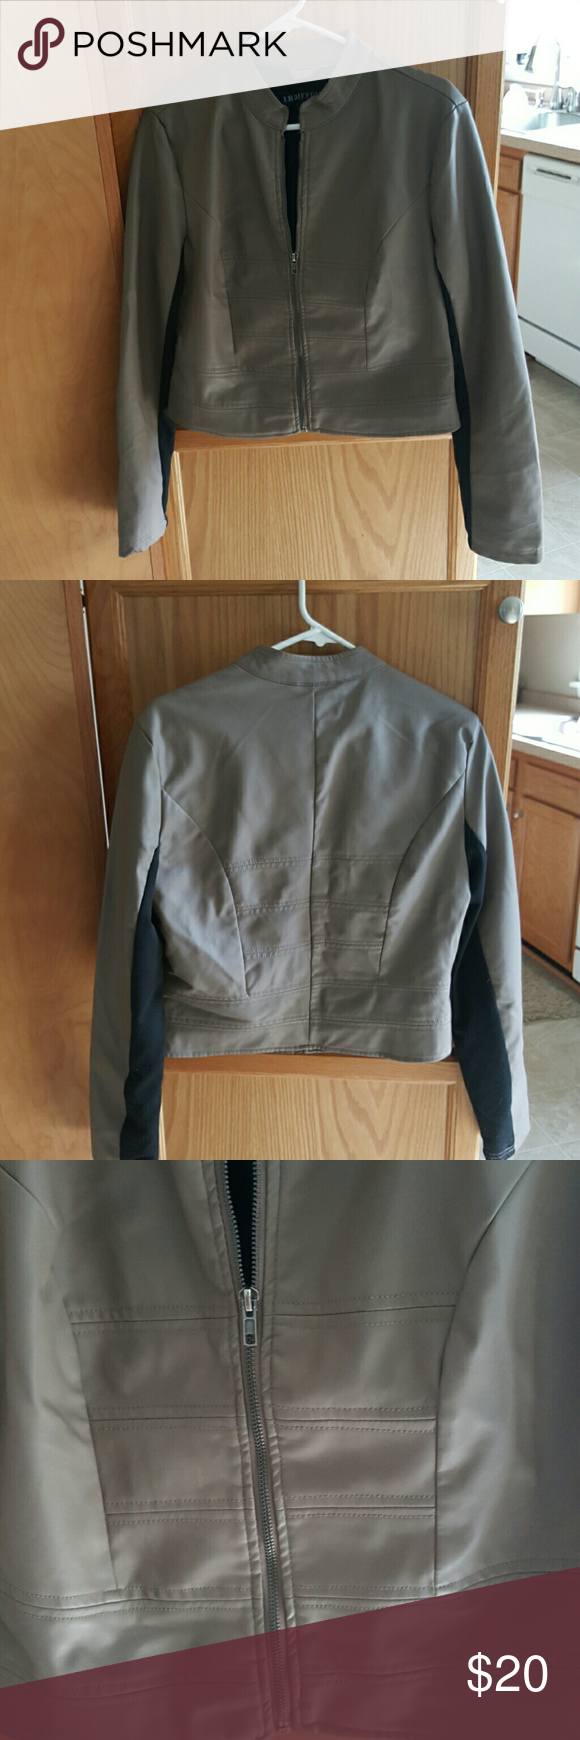 Jacket Very nice worn a few times no rips,stains or tares. Measurements:From shoulder to waist 20 1/2 in. Laying flat chest is 20 in. Armpit to wrist is 19 1/2 in. I.B. Diffusion  Jackets & Coats